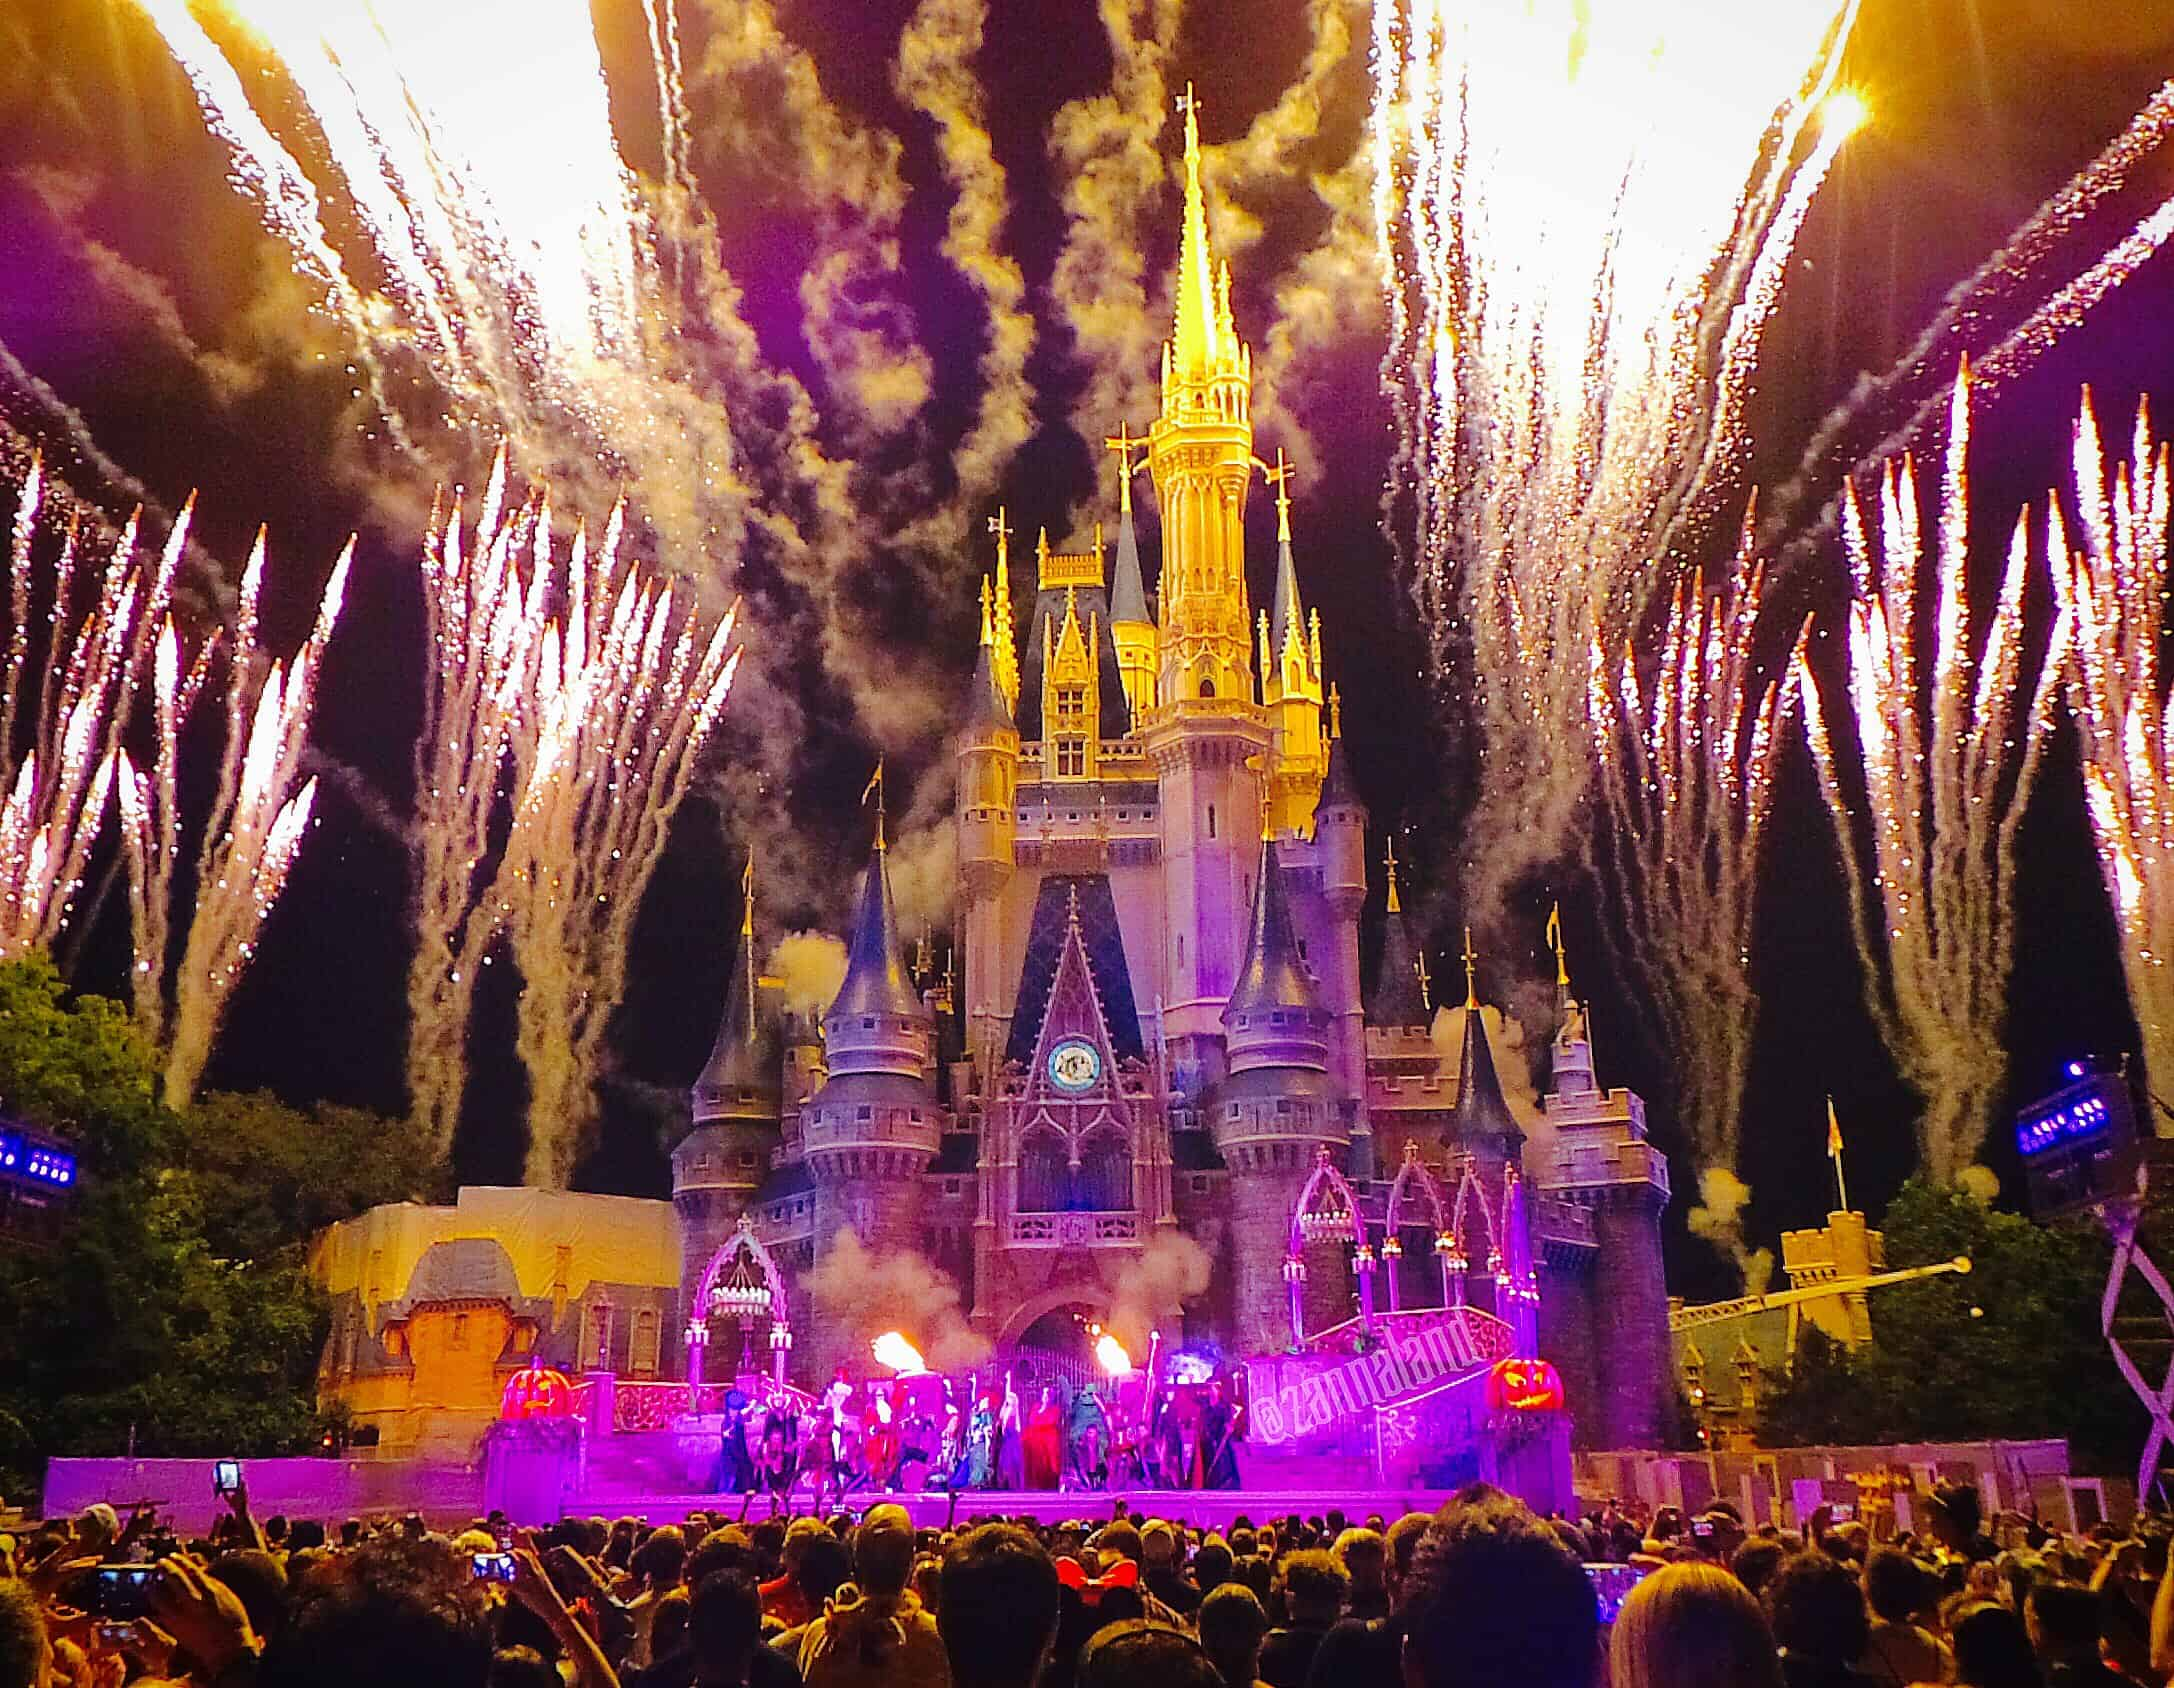 Hocus Pocus Show Puts a Spell on Mickey's Not So Scary Halloween Party